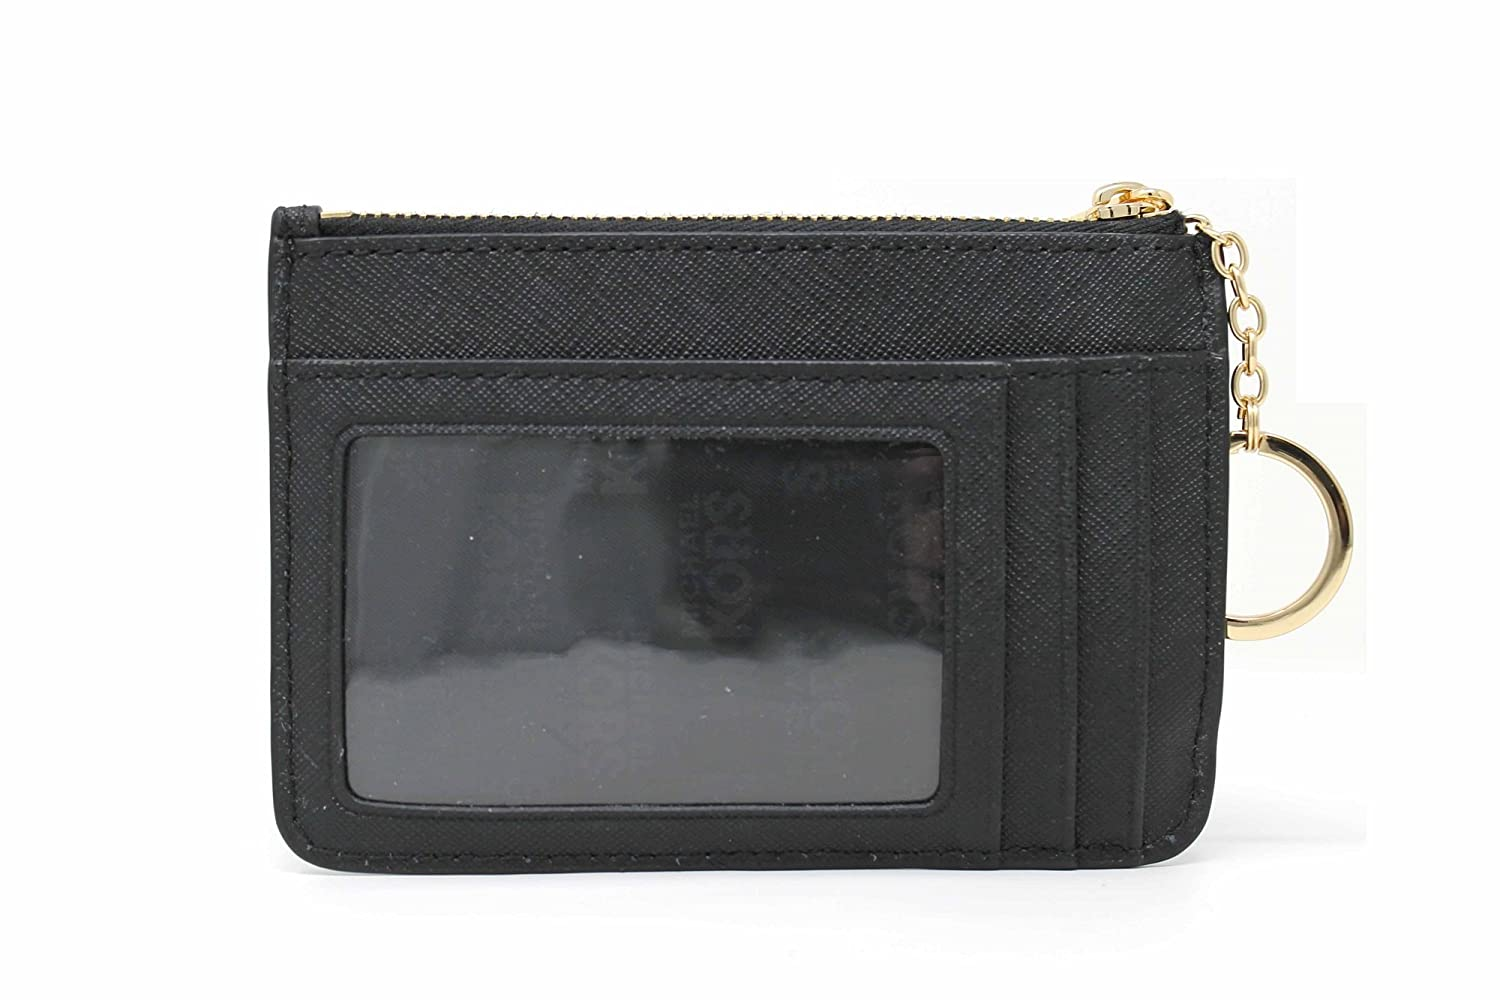 46c462c3f4b8 Michael Kors Saffiano Leather Jet Set Item Small TZ Coin Pouch Card Case  with ID Window (Black)  Amazon.co.uk  Clothing